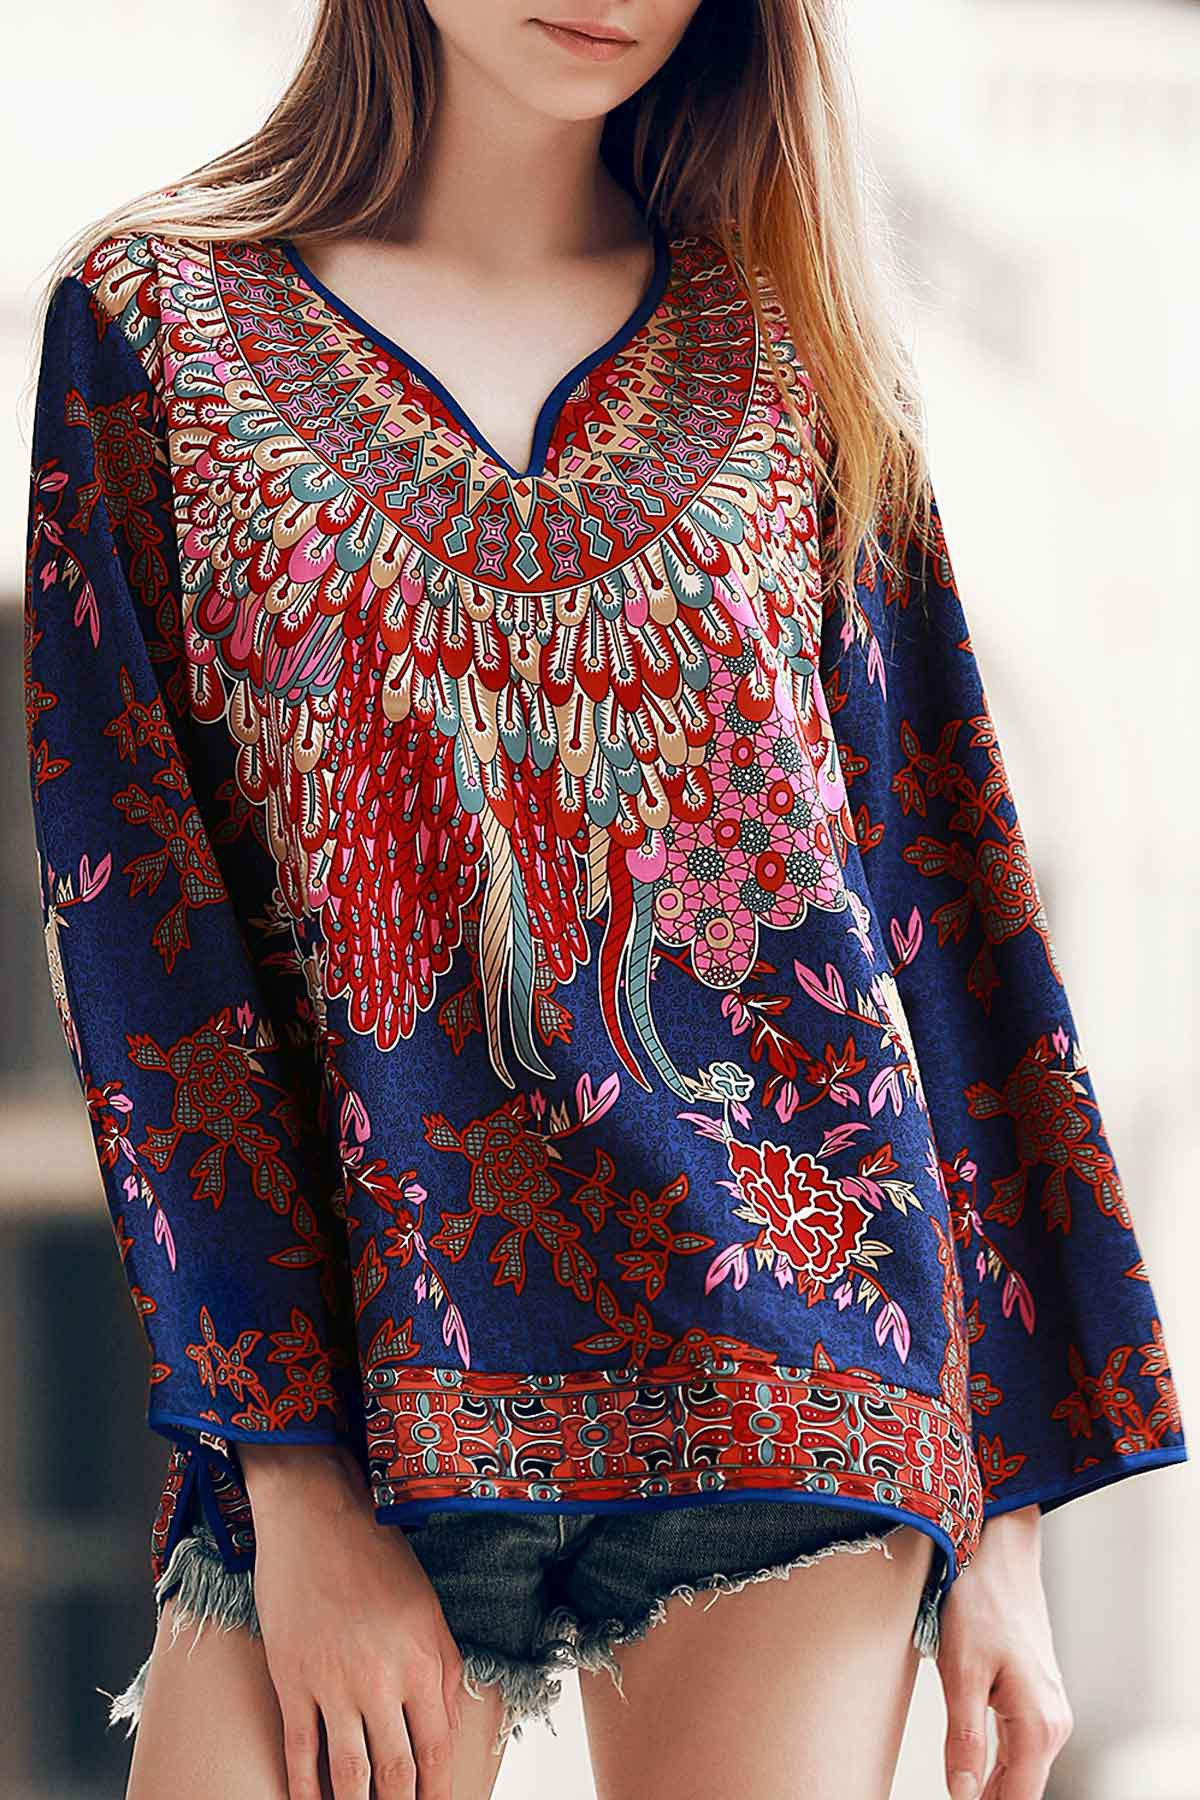 Vintage 3/4 Sleeve Colorful Floral Pattern Women's T-Shirt - COLORMIX M